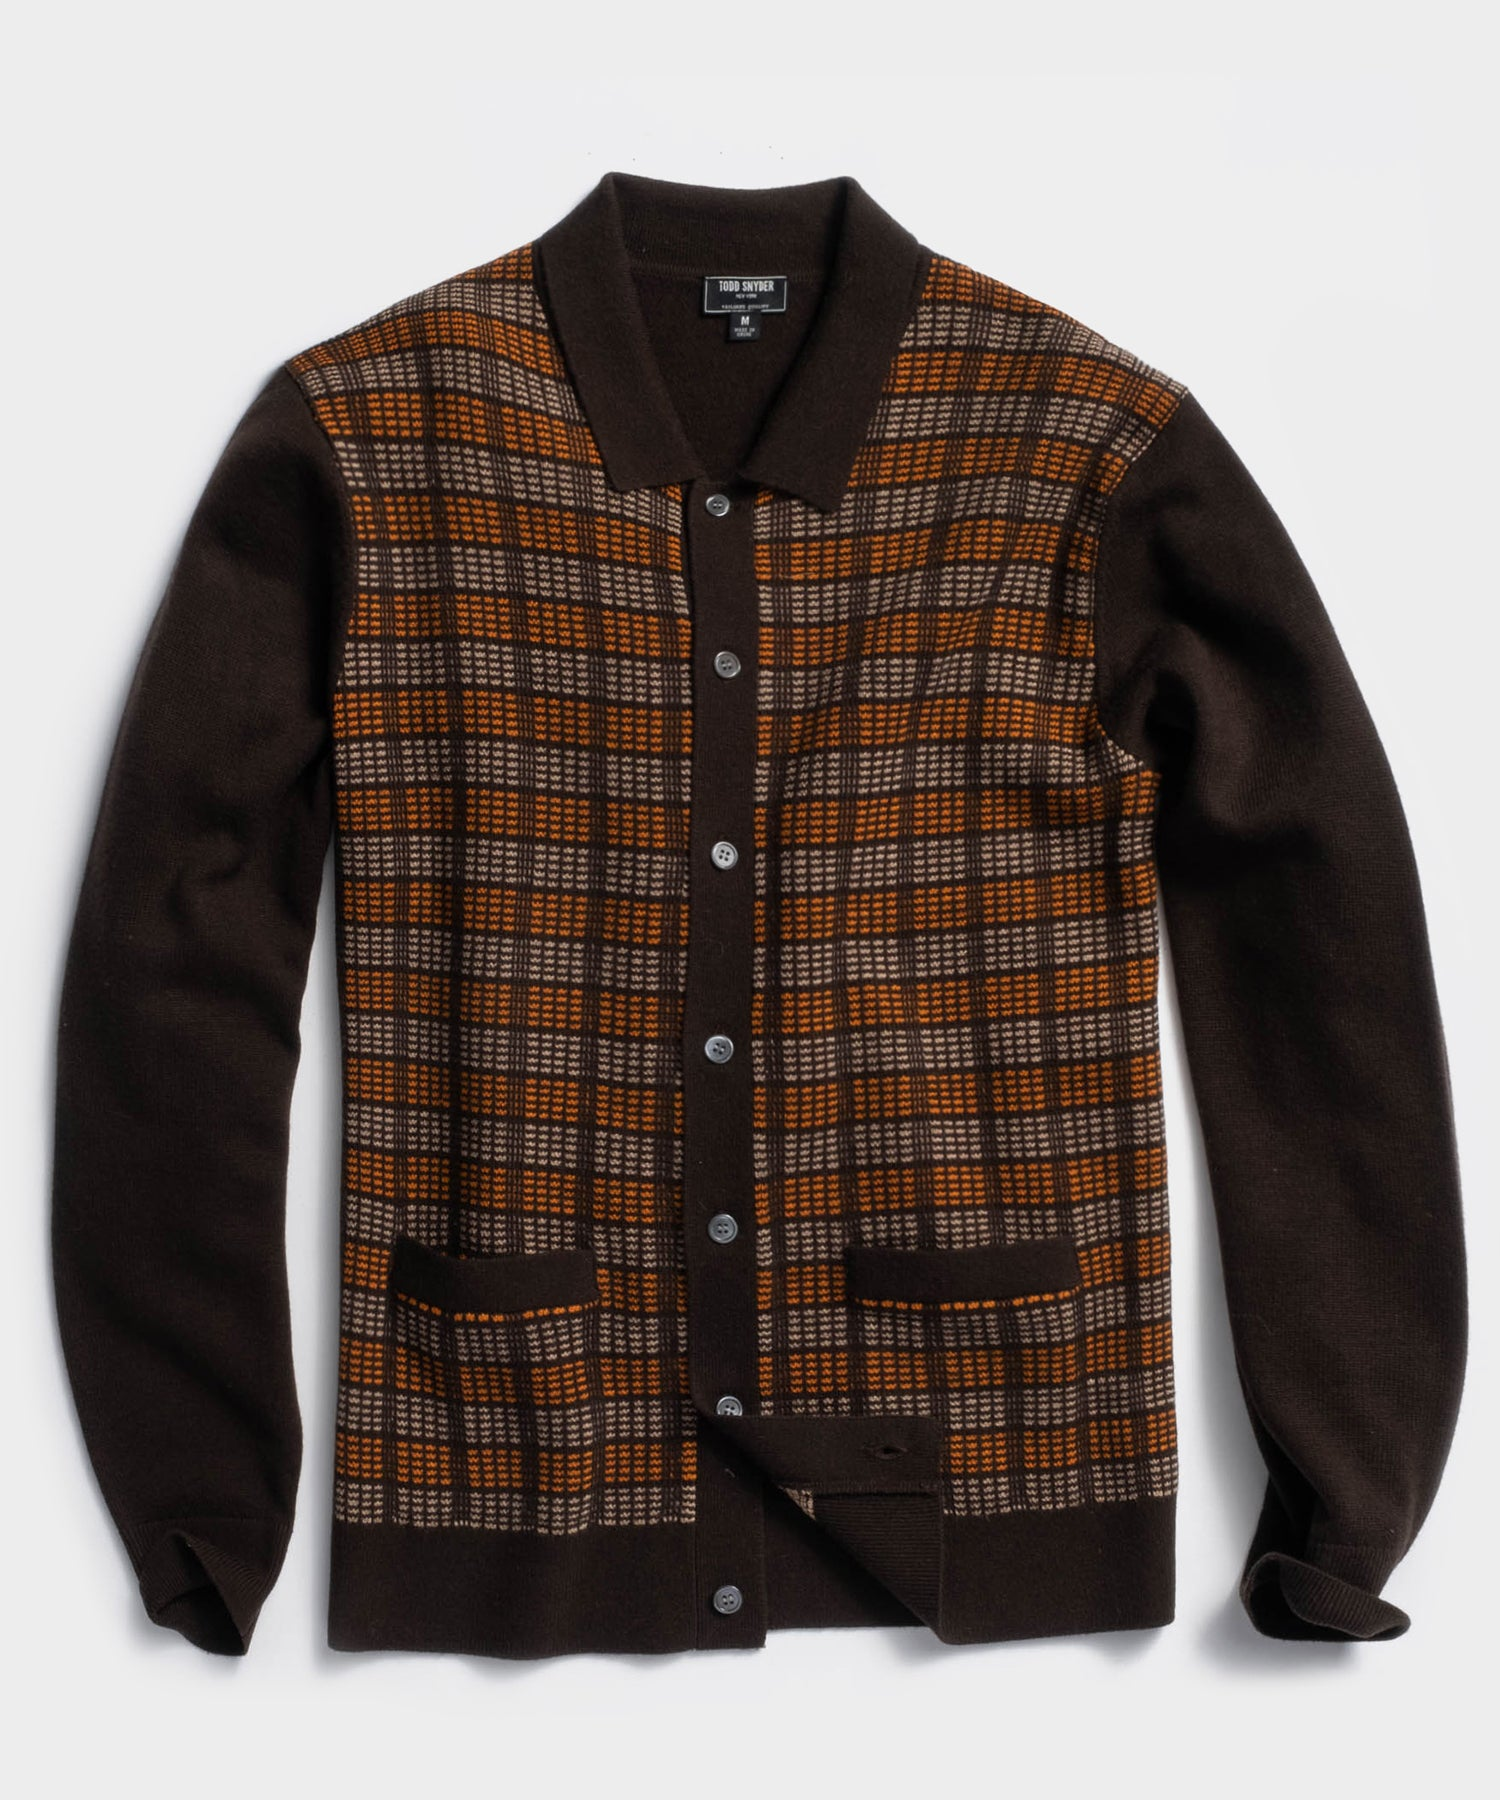 Italian Merino Sweater Polo Cardigan in Brown